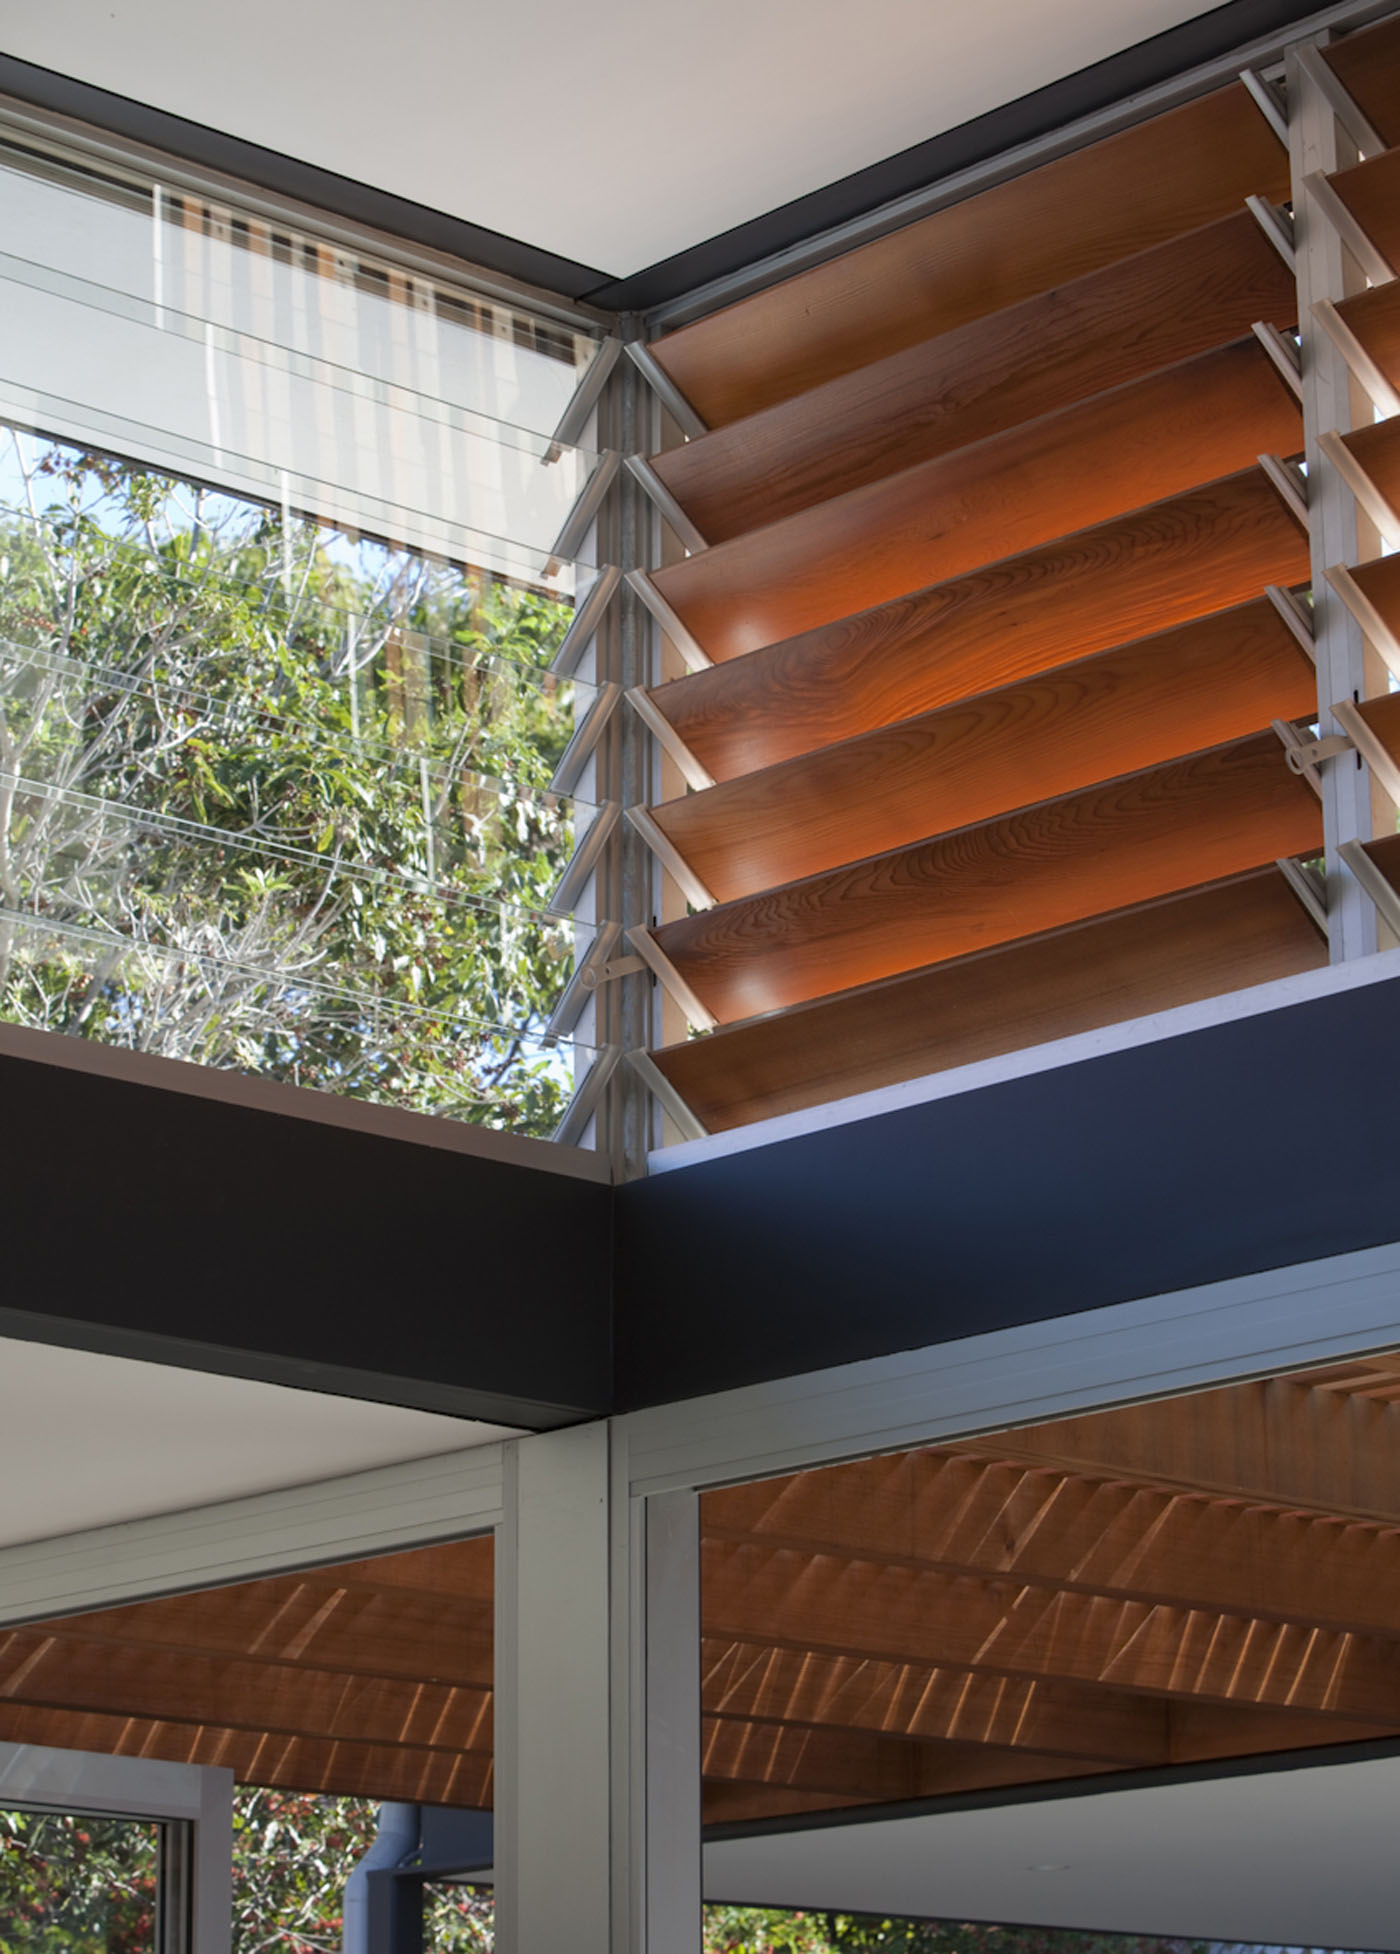 Lambert House by Sydney award winning residential architecture office Sam Crawford Architects. Operable louvers allow sunlight and ventilation to living space